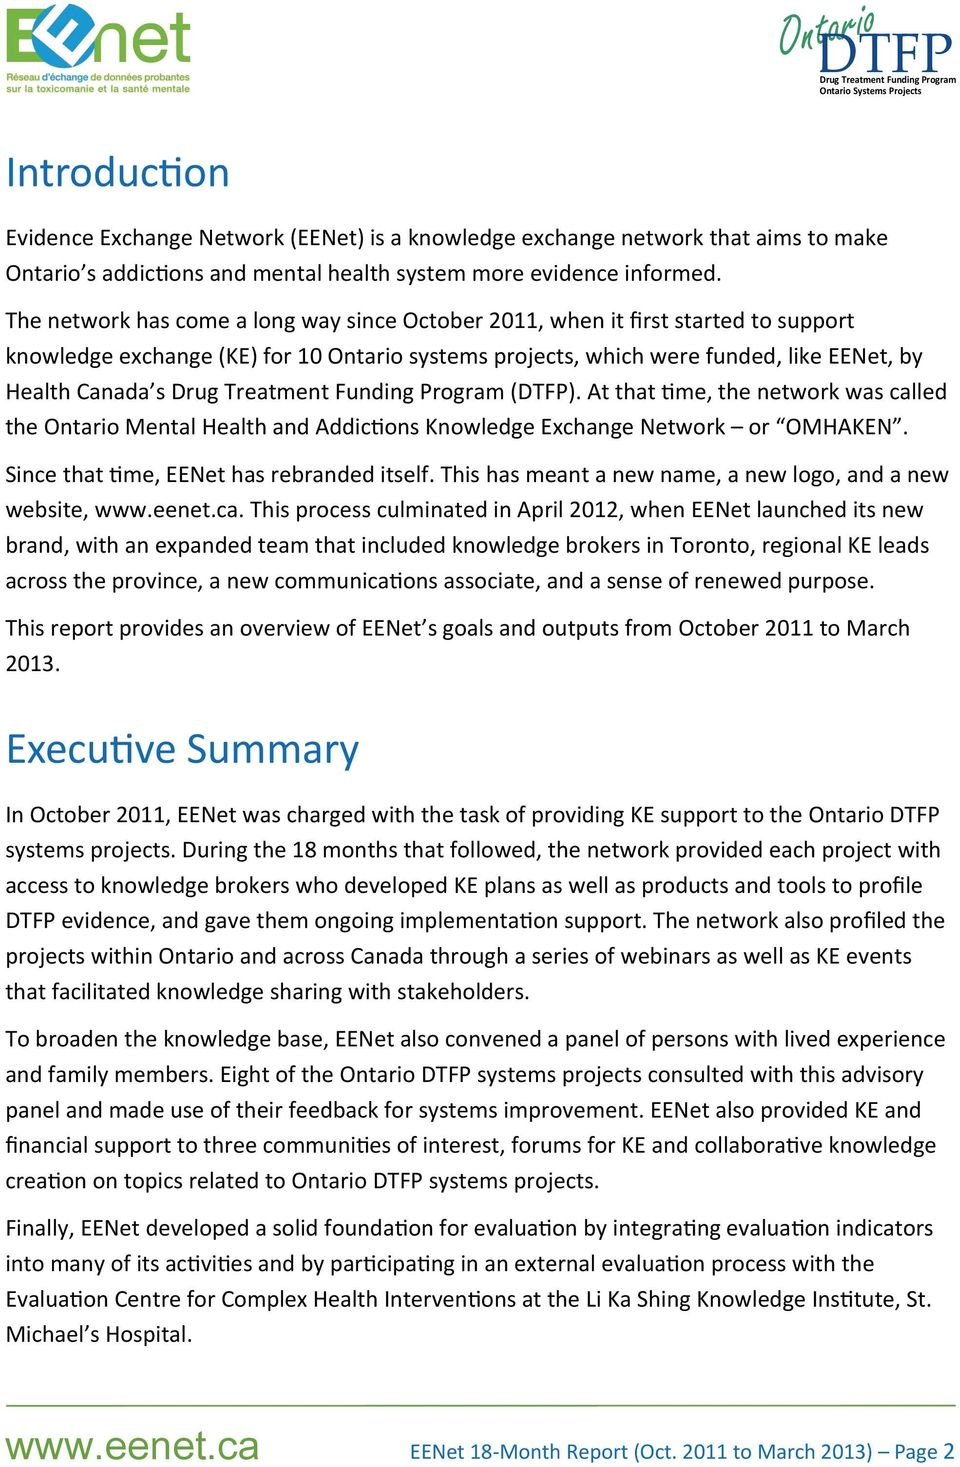 At that me, the network was called the Ontario Mental Health and Addic ons Knowledge Exchange Network or OMHAKEN. Since that me, EENet has rebranded itself.